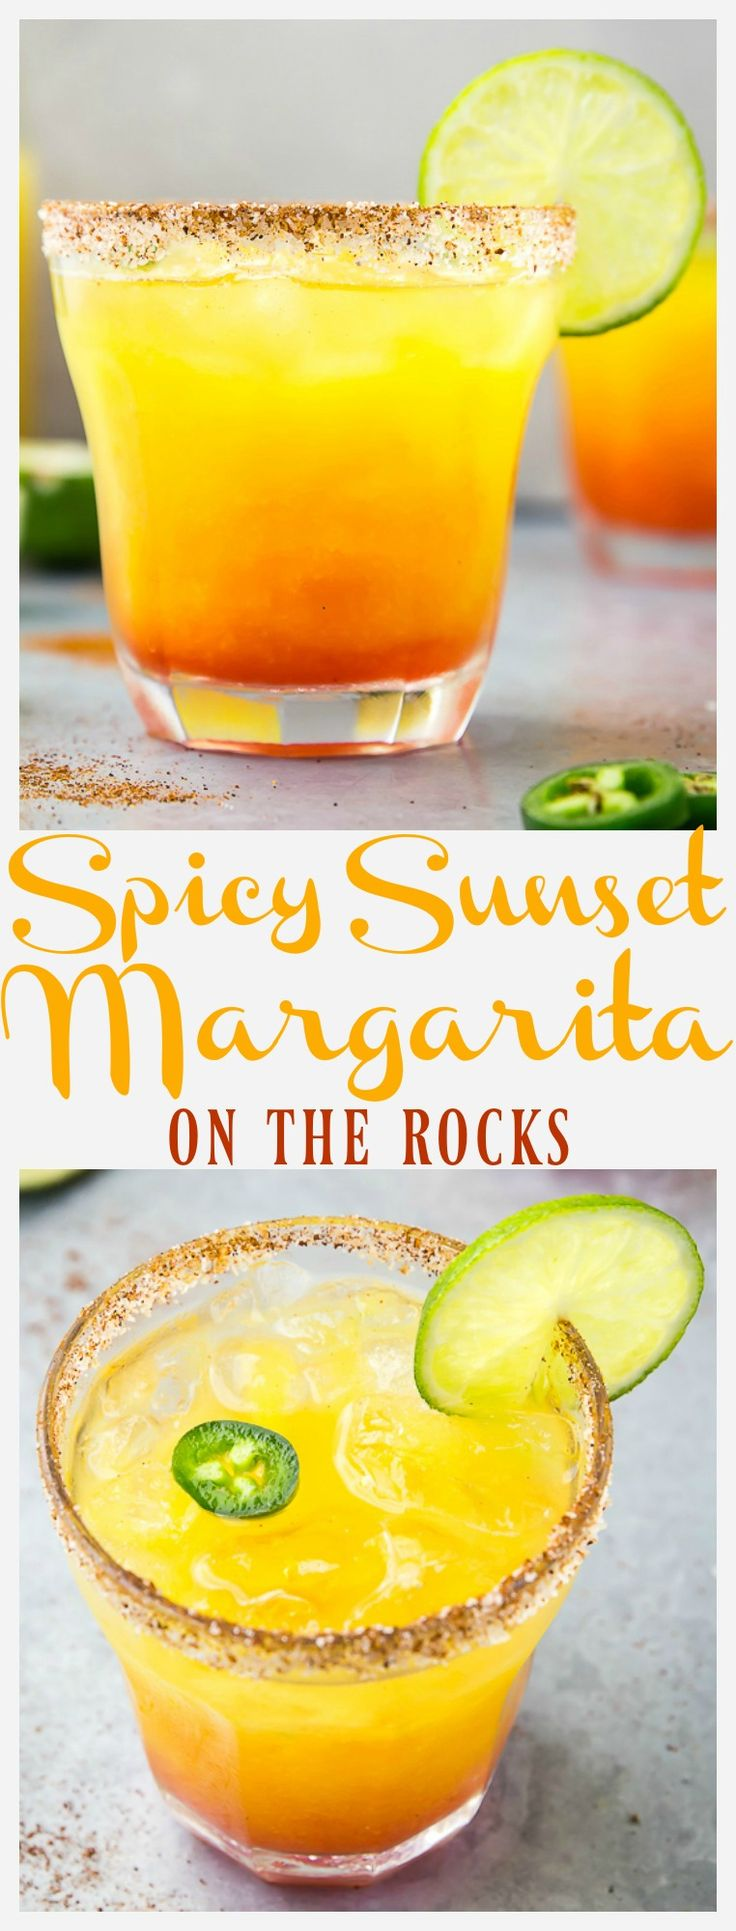 Spicy Sunset Margarita On The Rocks | This  is a fruity, fiery twist on the classic Mexican cocktail. Flavored with mango, pineapple, jalapeno and grenadine, this tropical tequila libation is sure to